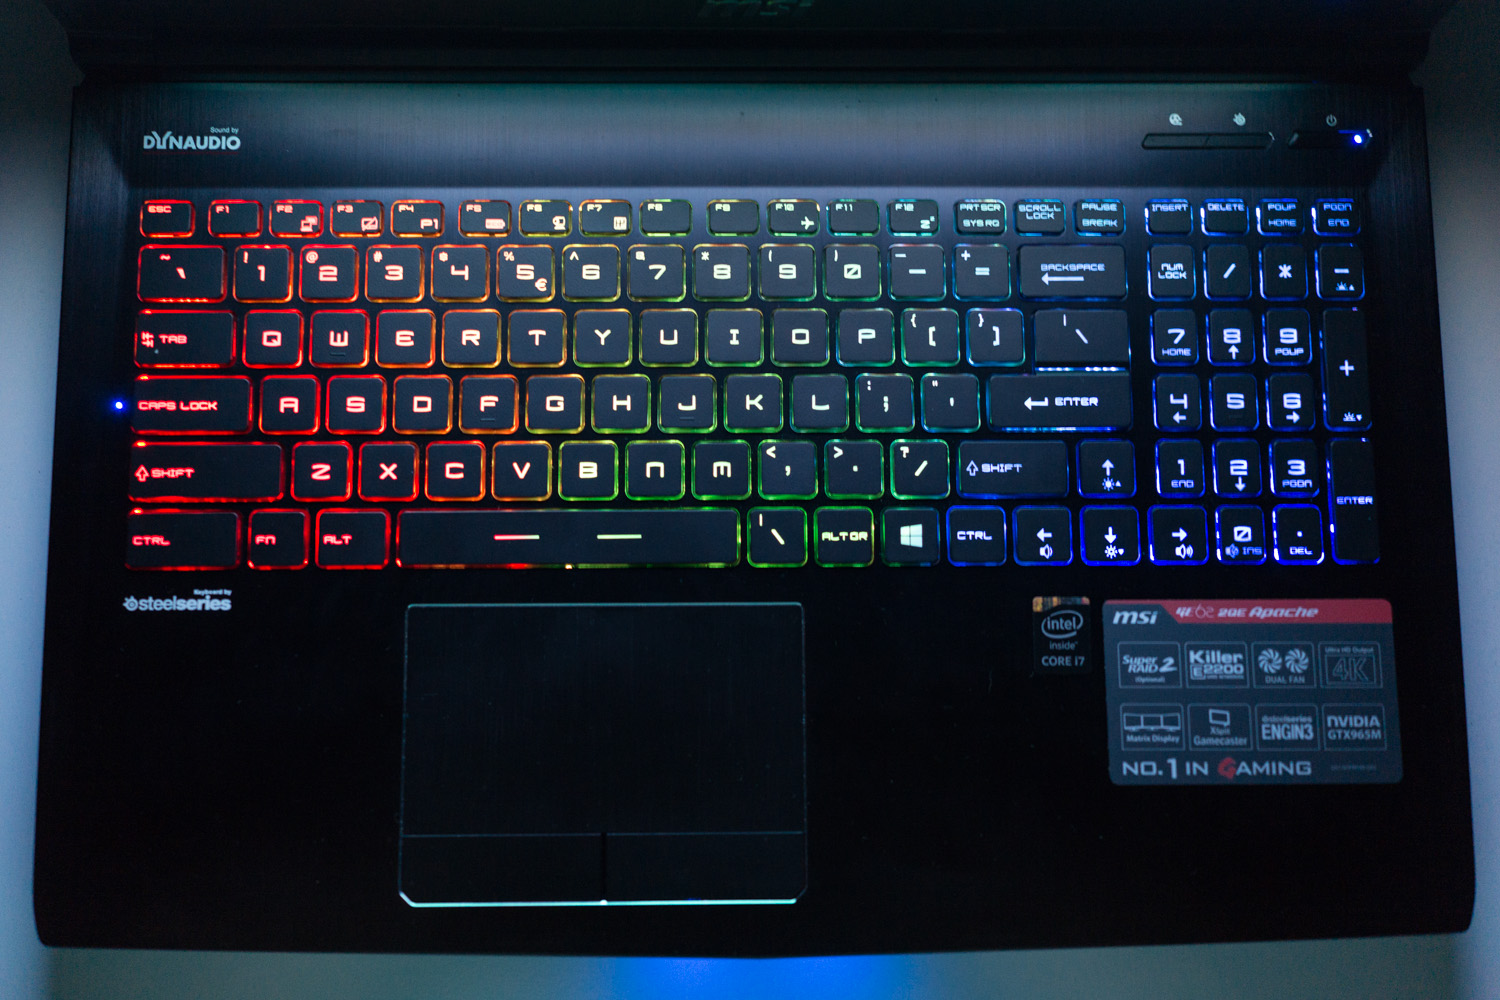 How To Pick A Laptop With Good Keyboard Acer Aspire Parts Diagram Features Like Key Style Led Backlighting And Dedicated Number Pad Are Sometimes More